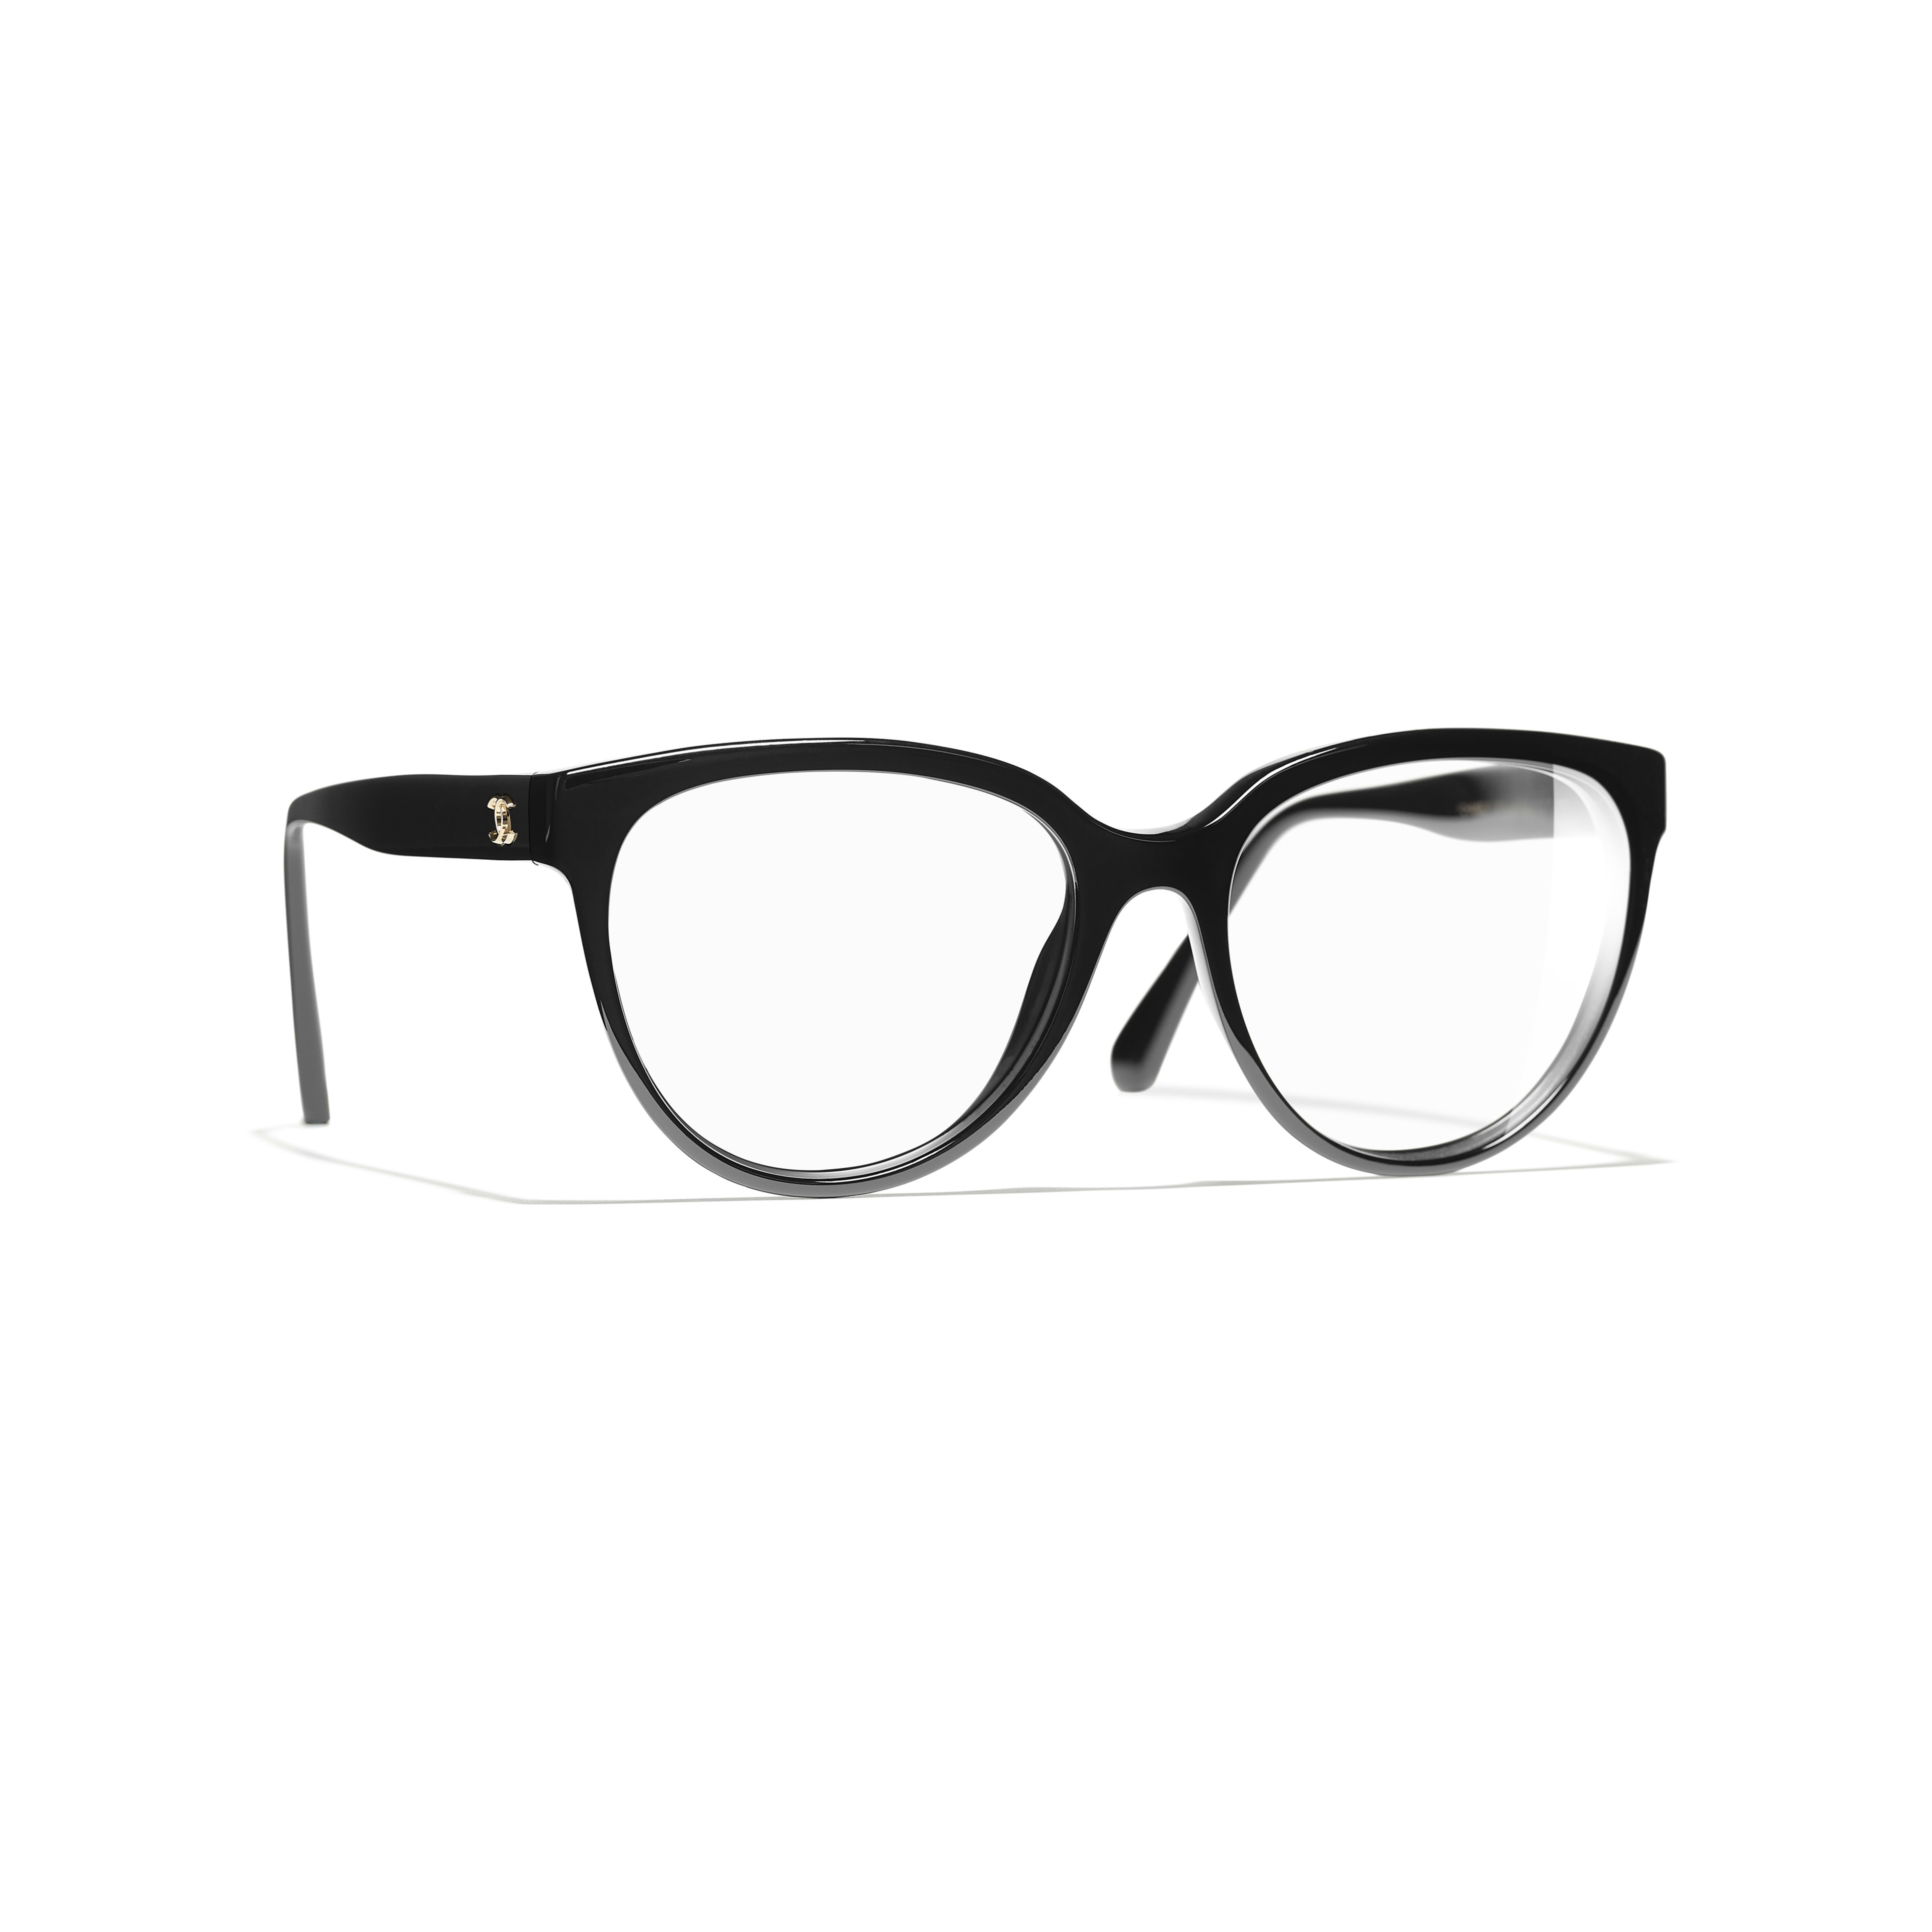 Butterfly Eyeglasses - Black - Acetate - Default view - see full sized version